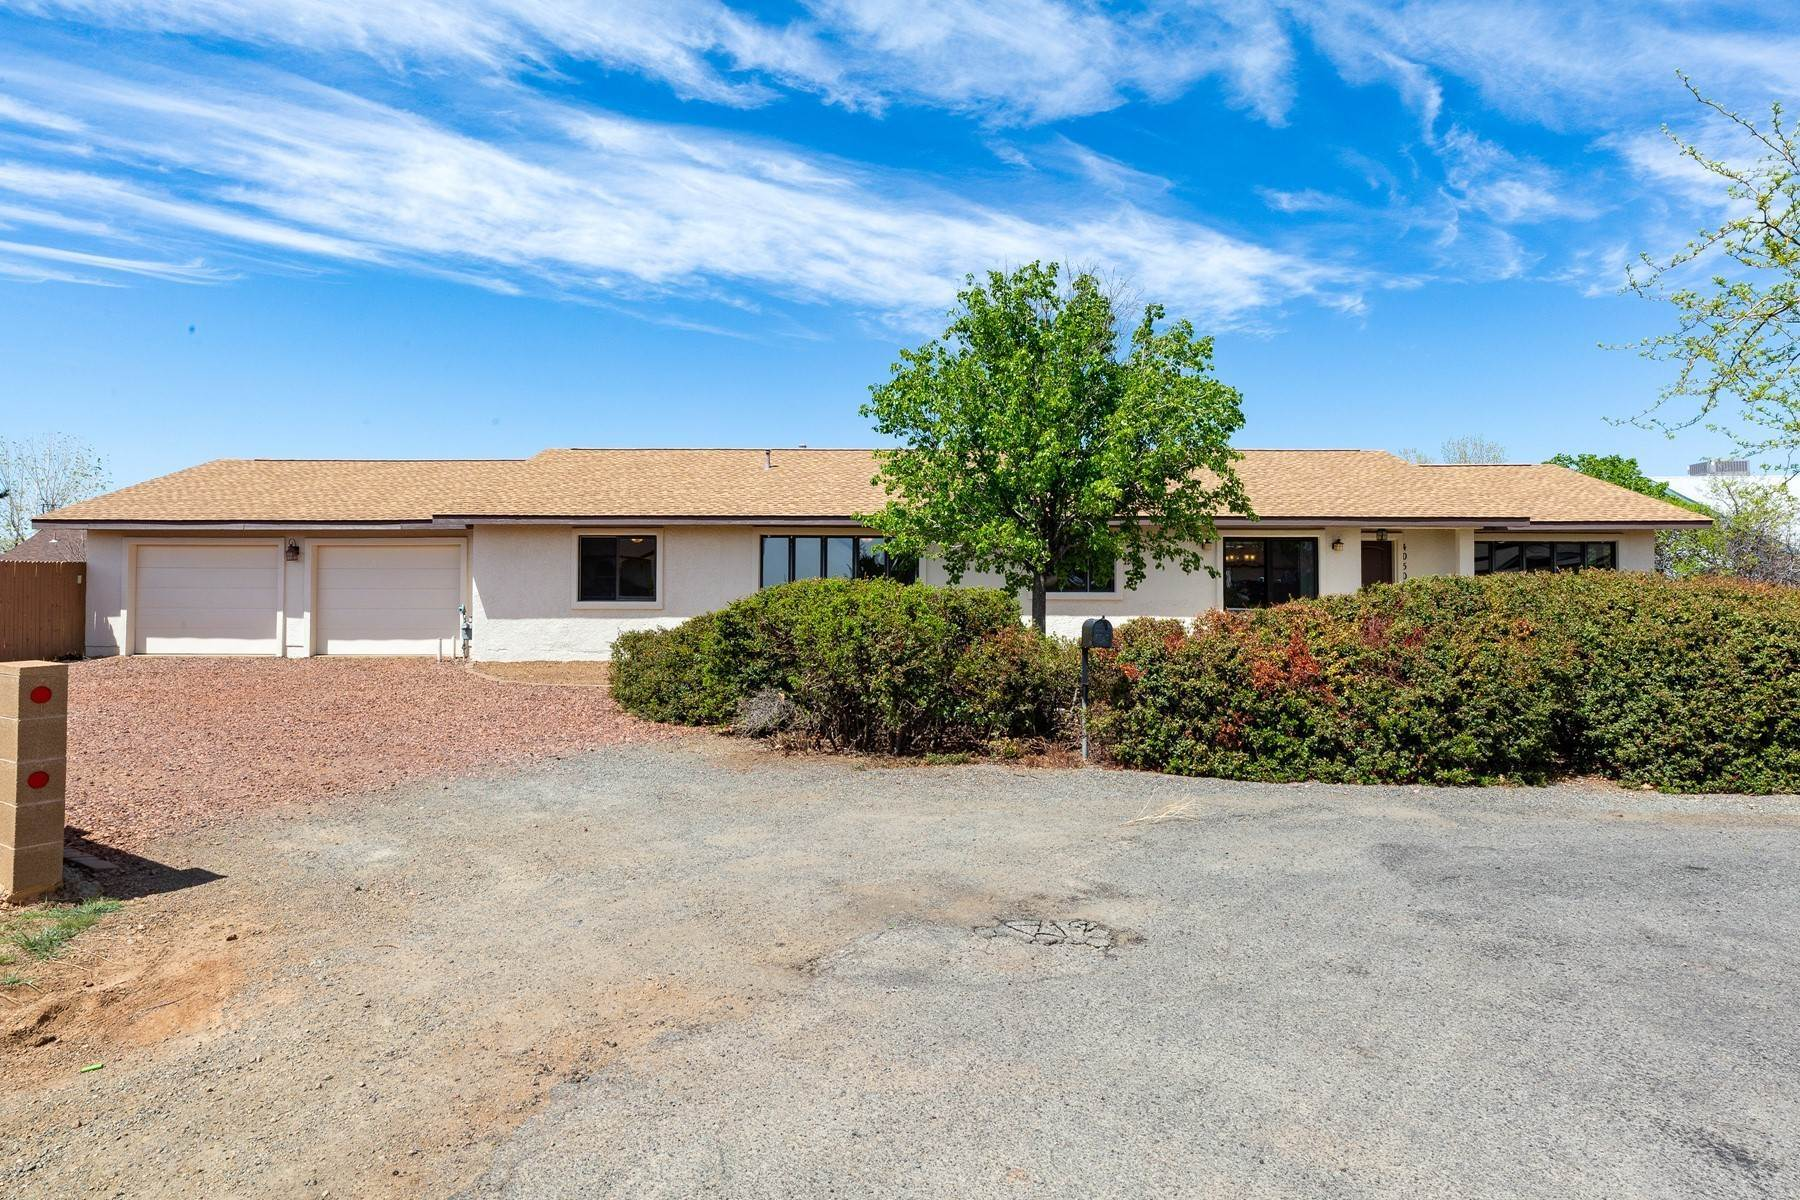 Single Family Homes for Sale at Prescott Valley 4050 N Superstition Court Prescott Valley, Arizona 86314 United States